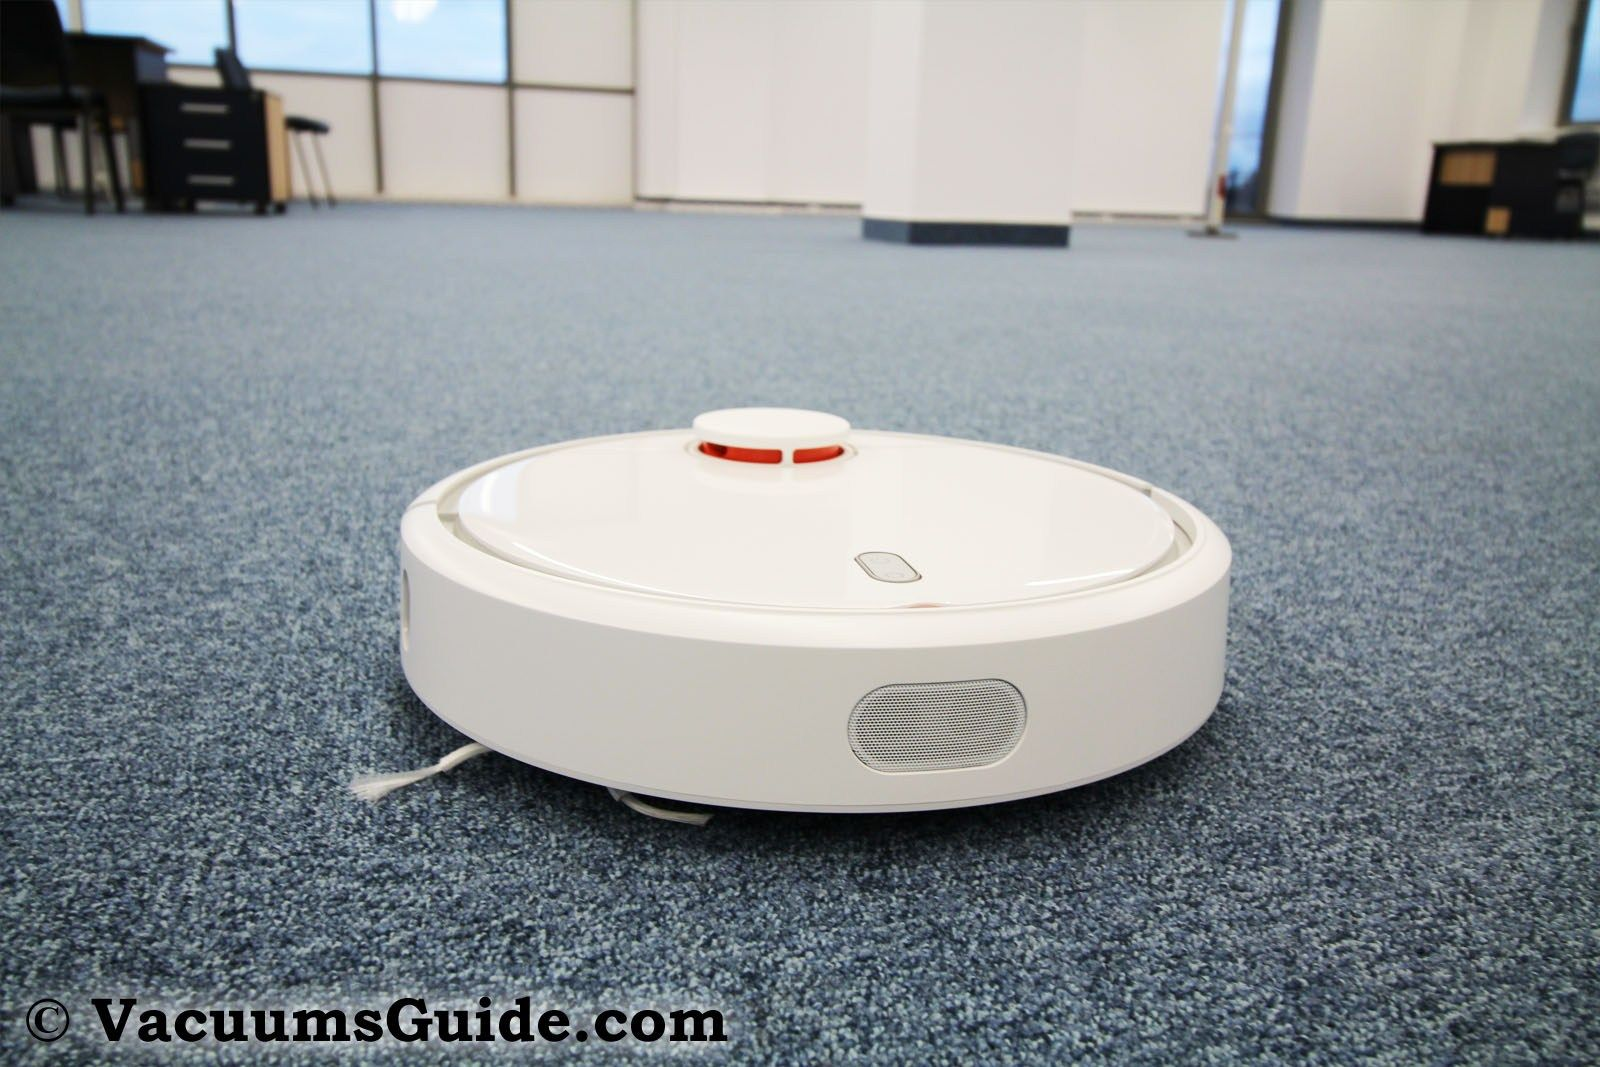 Xiaomi Mi robot vacuum cleaner - what lays behind the hype